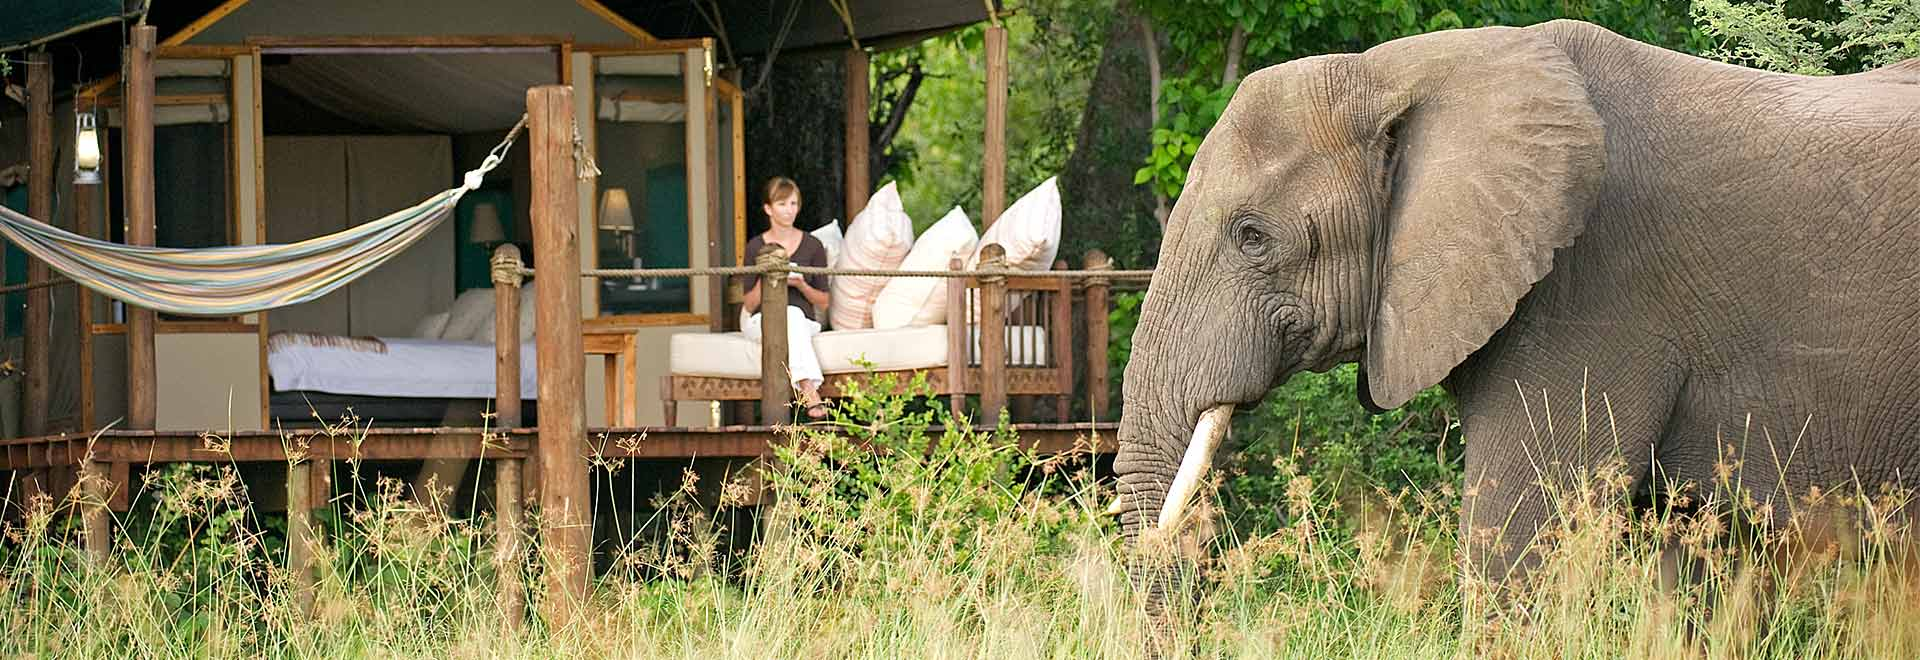 Africa-Southern-Sanctuary-Elephant-MH